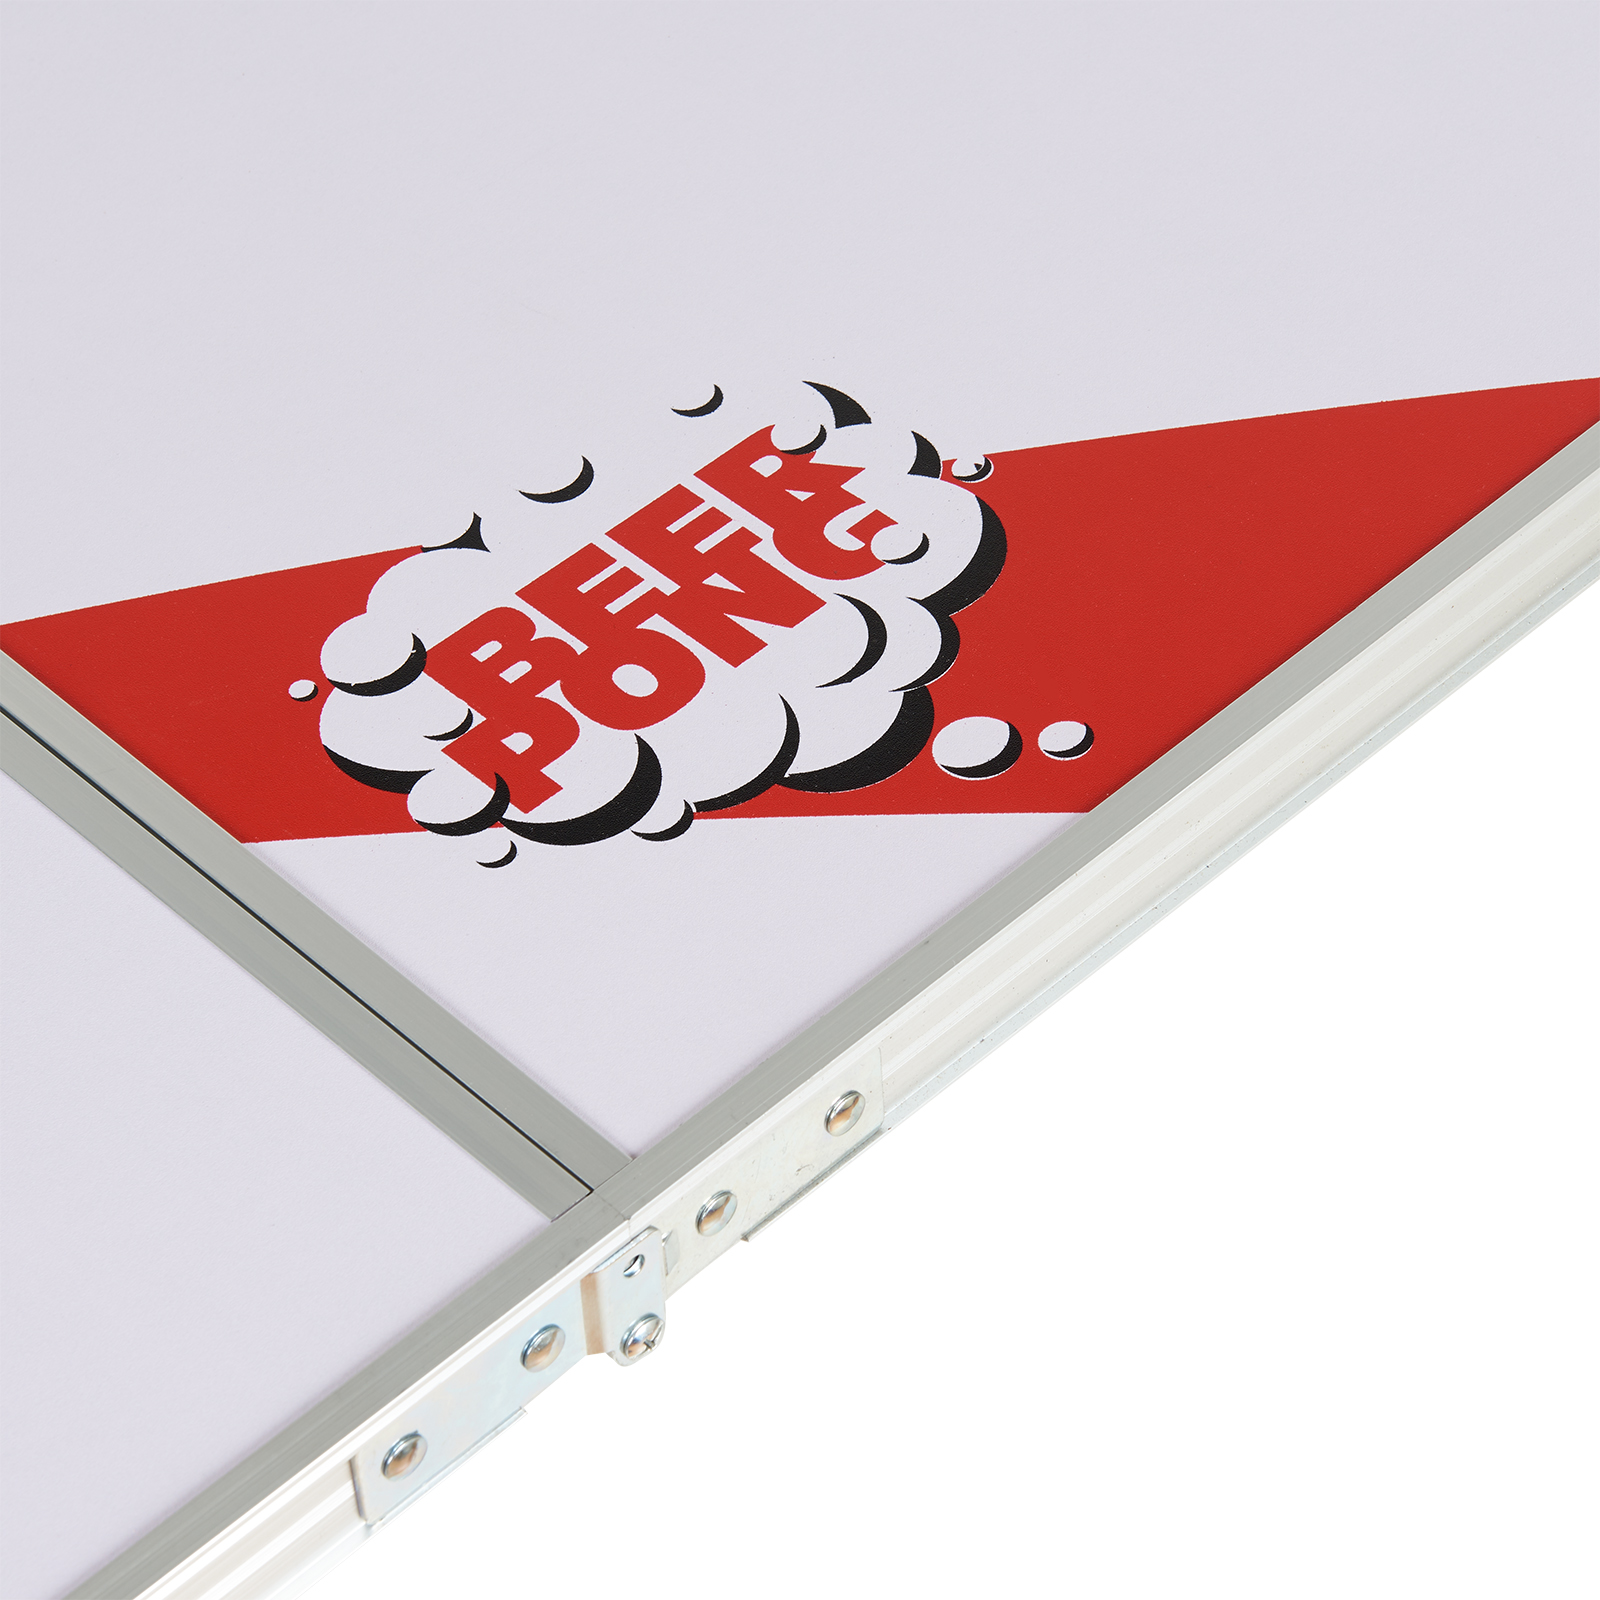 OFFICIAL 8' WHITE 4 SECTION FOLDING BEER PONG TABLE BBQ ...